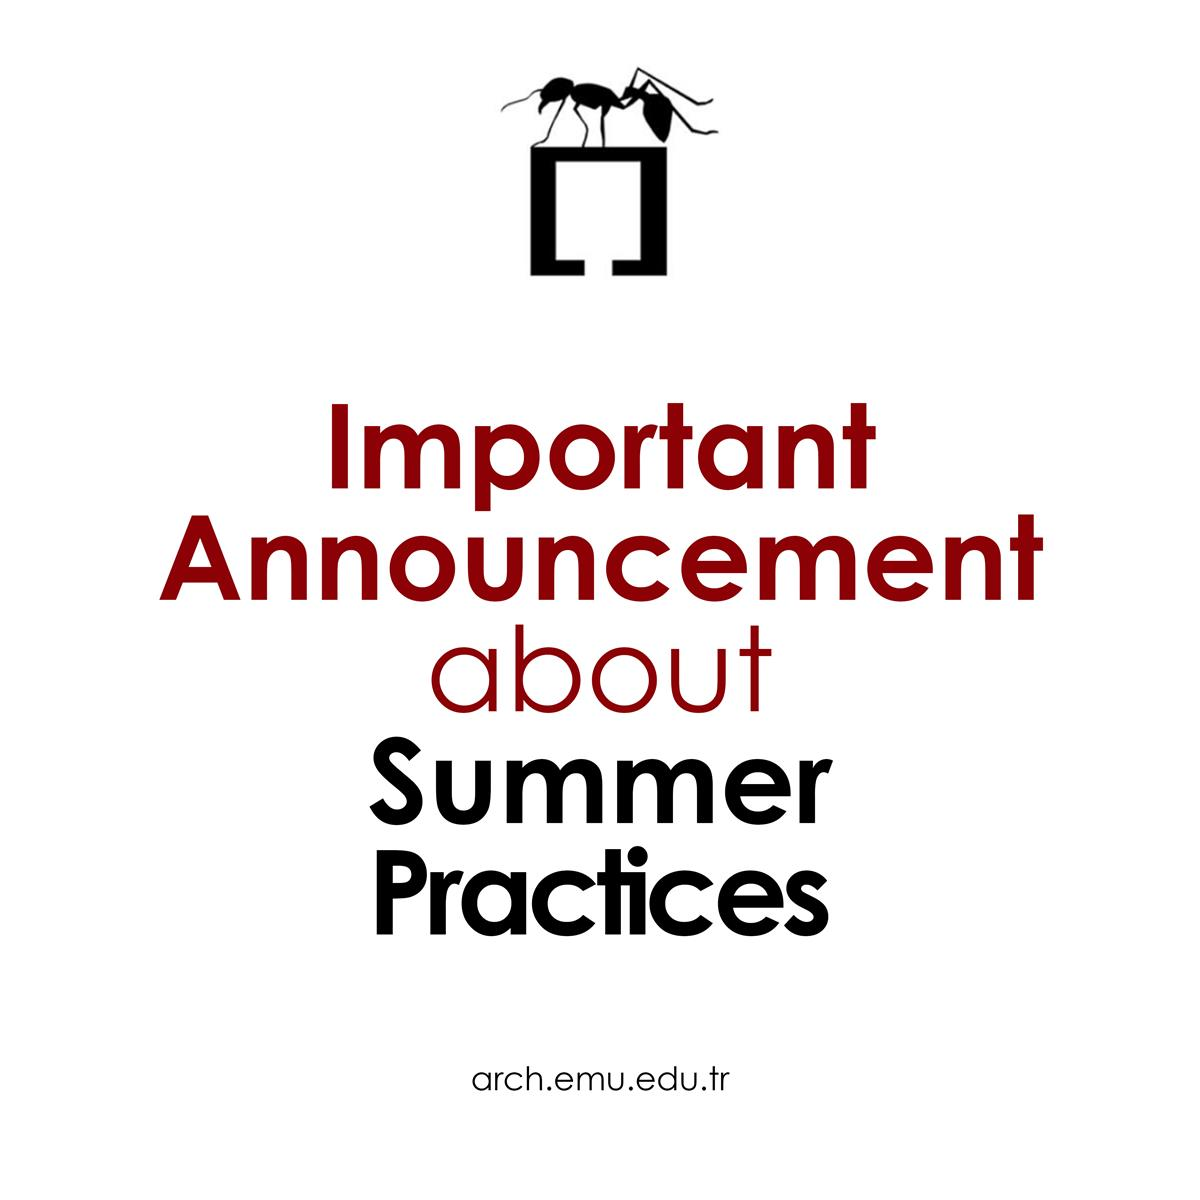 Important Announcement about Summer Practices